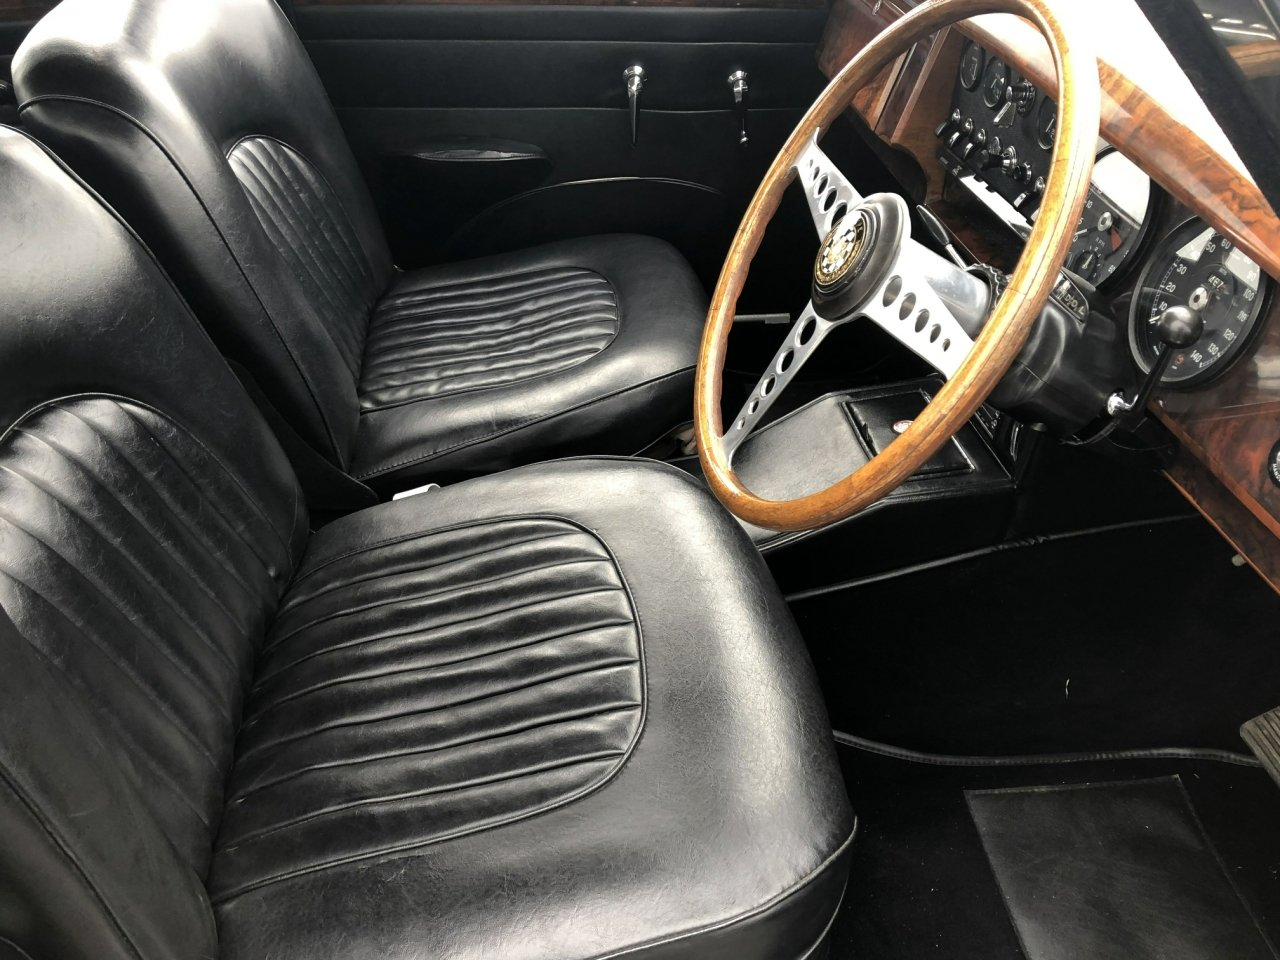 1967 Jaguar 340 MK II Automatic SOLD (picture 5 of 6)